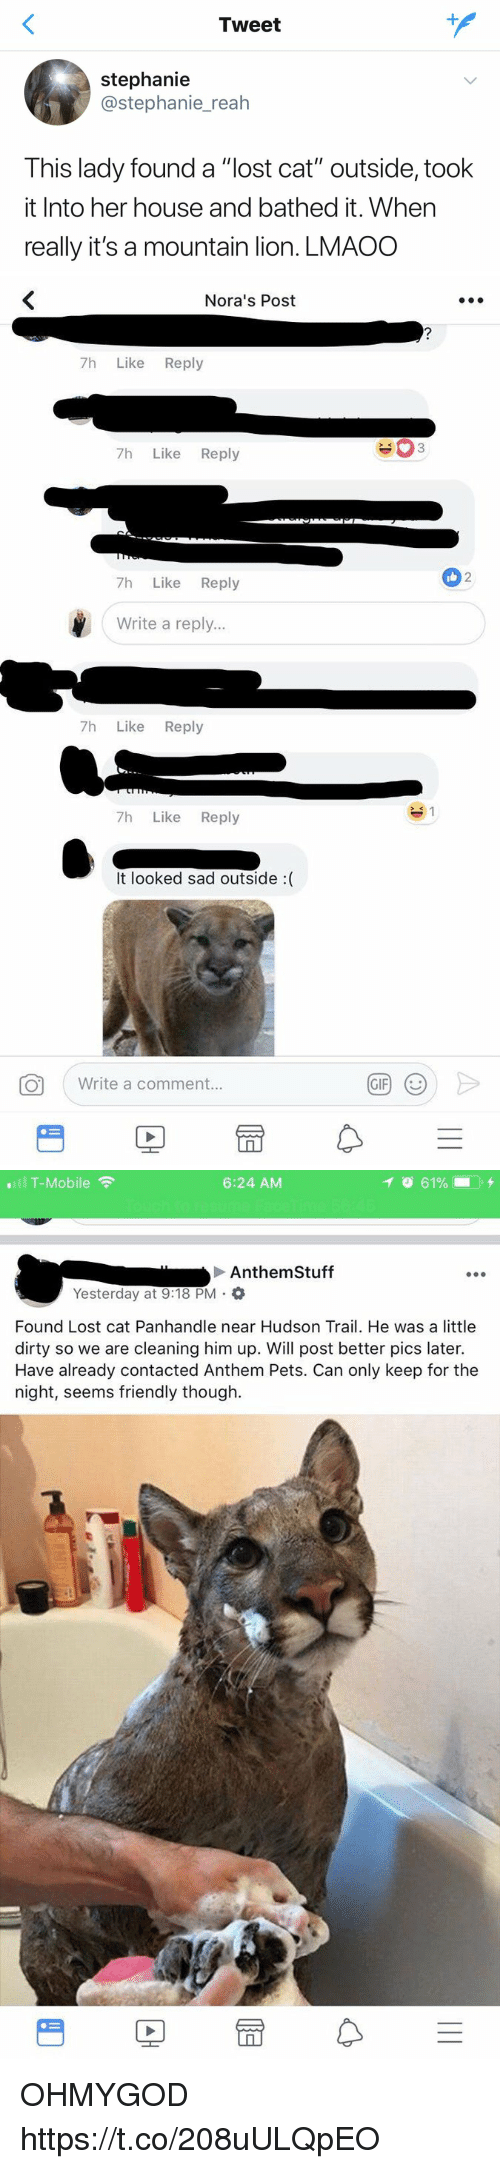 "Lost Cat: Tweet  stephanie  @stephanie_reah  This lady found a ""lost cat"" outside, took  it Into her house and bathed it. When  really it's a mountain lion. LMAOO   Nora's Post  7h Like Reply  7h Like Reply  2  7h Like Reply  Write a reply...  7h Like Reply  7h Like Reply  It looked sad outside :(  Write a comment.  GIF   .111 T-Mobile令  6:24 AM  イ  61%- . +  Anthem Stuff  Yesterday at 9:18 PM .  Found Lost cat Panhandle near Hudson Trail. He was a little  dirty so we are cleaning him up. Will post better pics later.  Have already contacted Anthem Pets. Can only keep for the  night, seems friendly though.  PE OHMYGOD https://t.co/208uULQpEO"